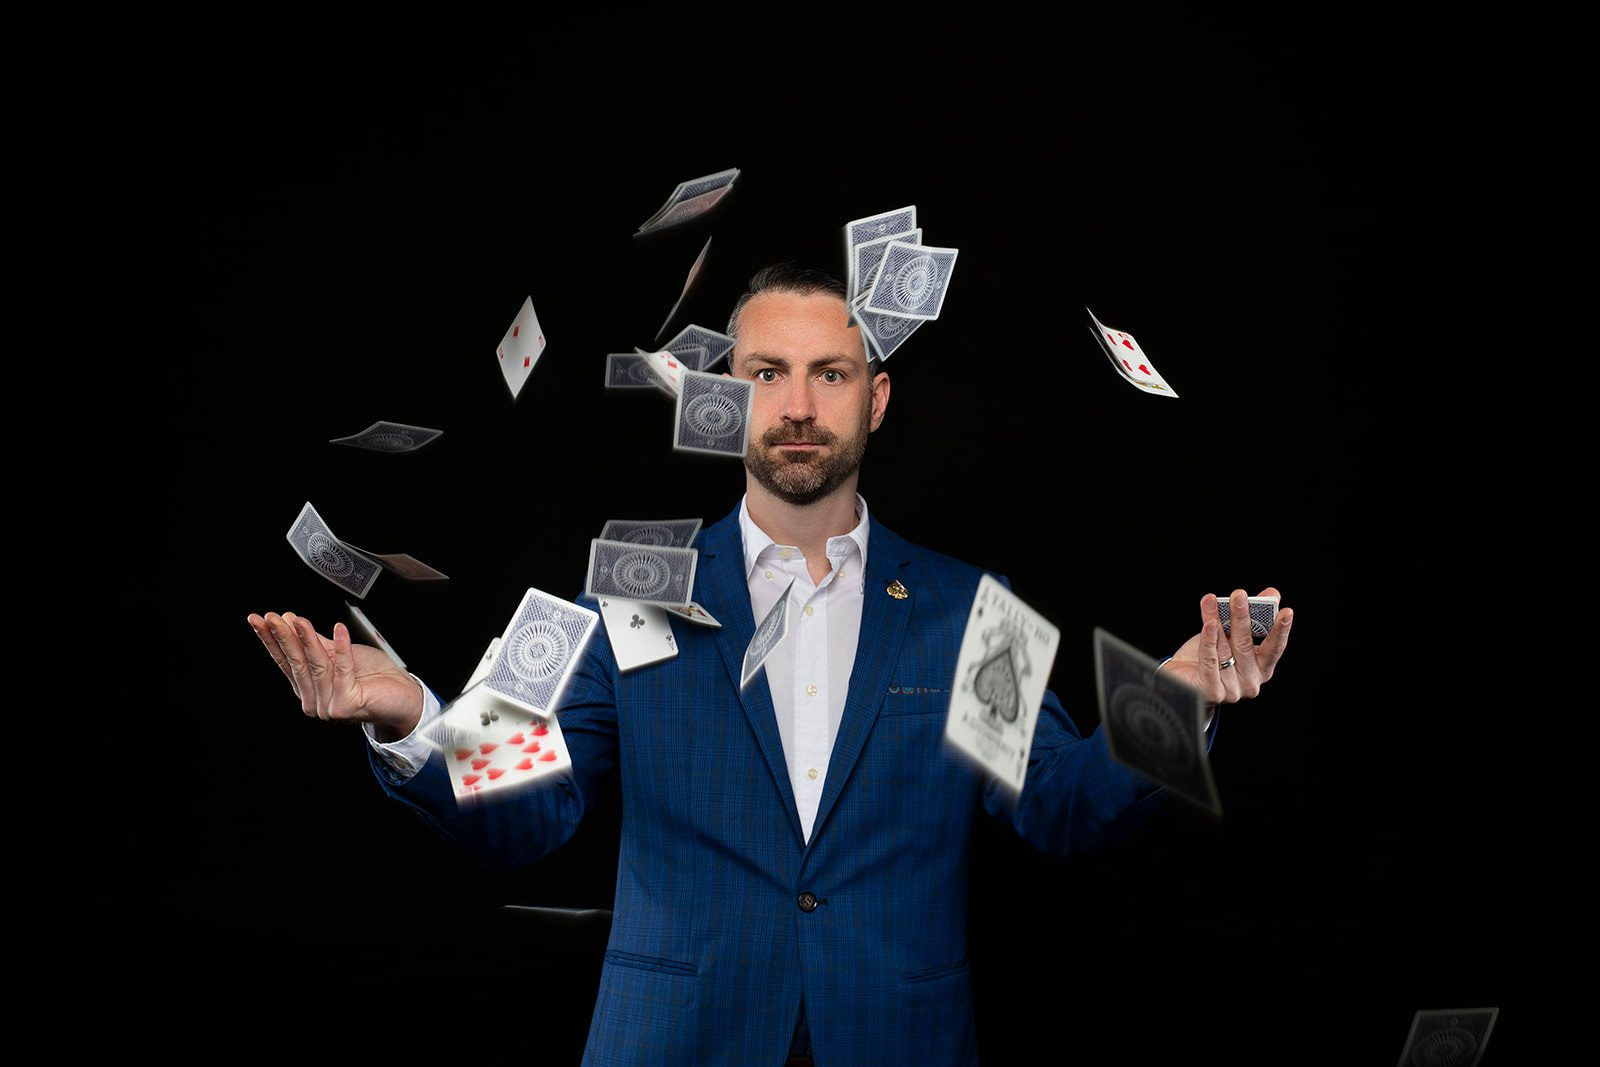 Personal branding photography for magician Paul James by Perth commercial photographer Dennis Tan Creative